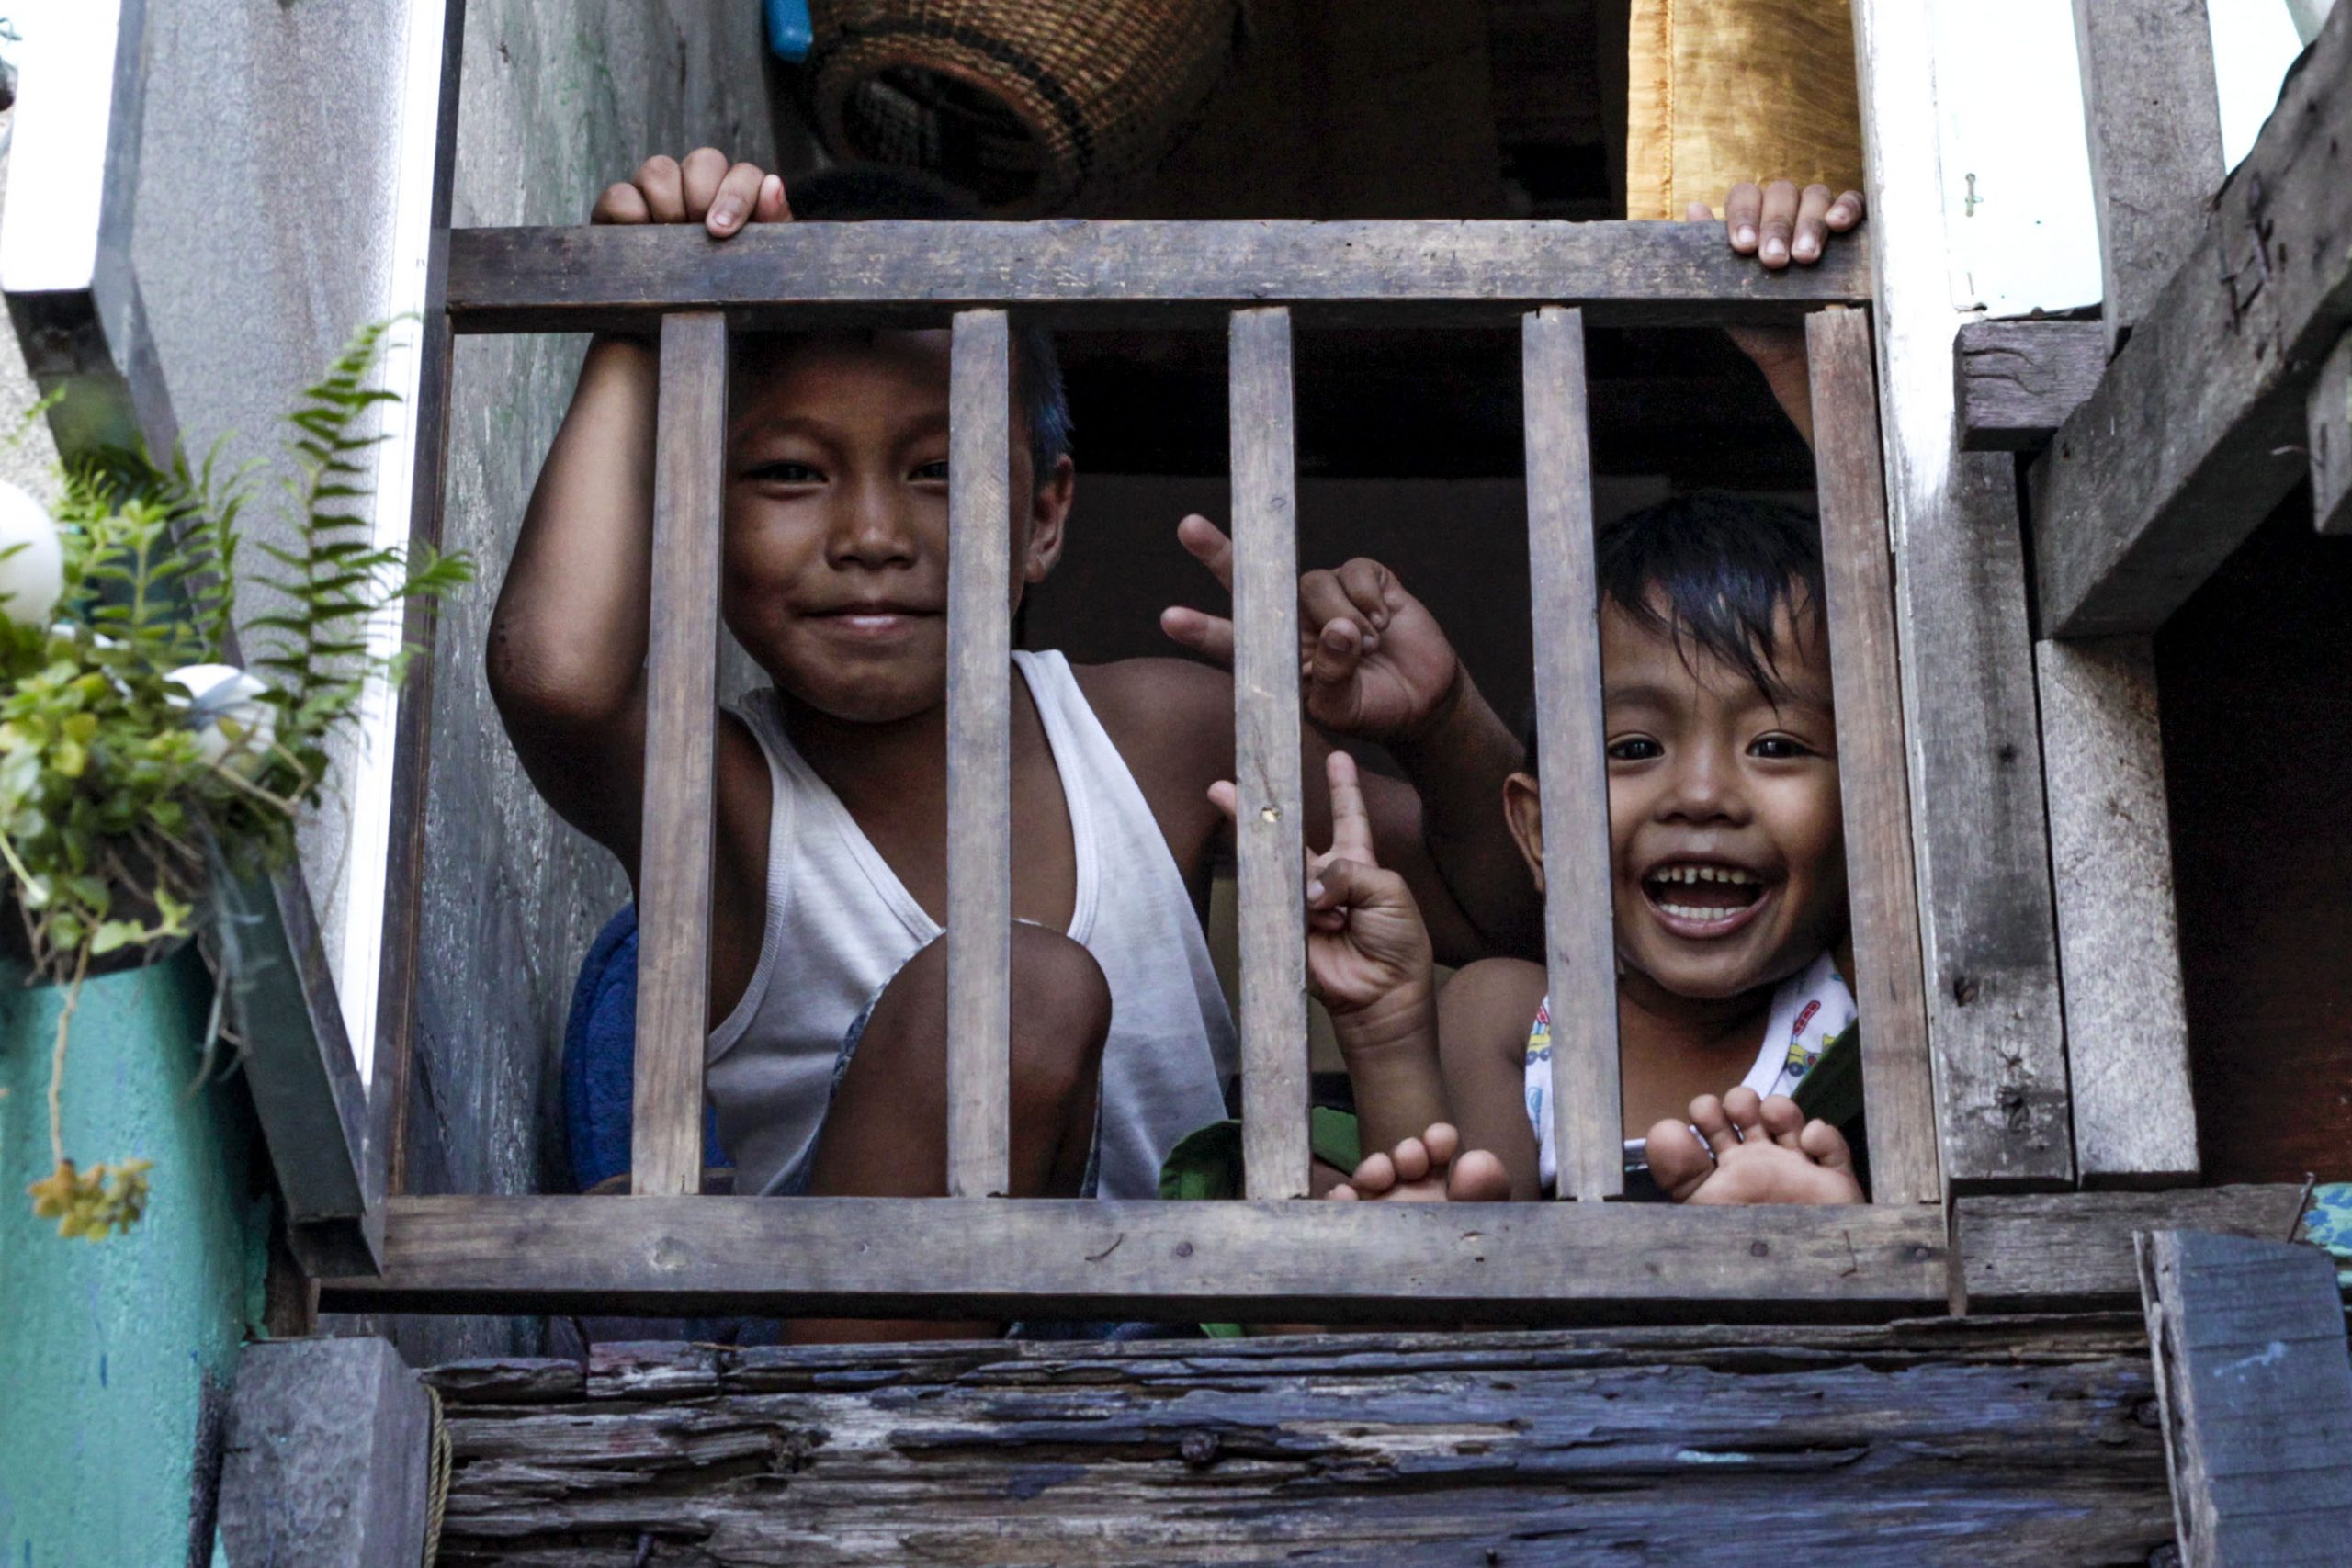 Child rights advocates laud passage of bill promoting positive and non-violent discipline of children